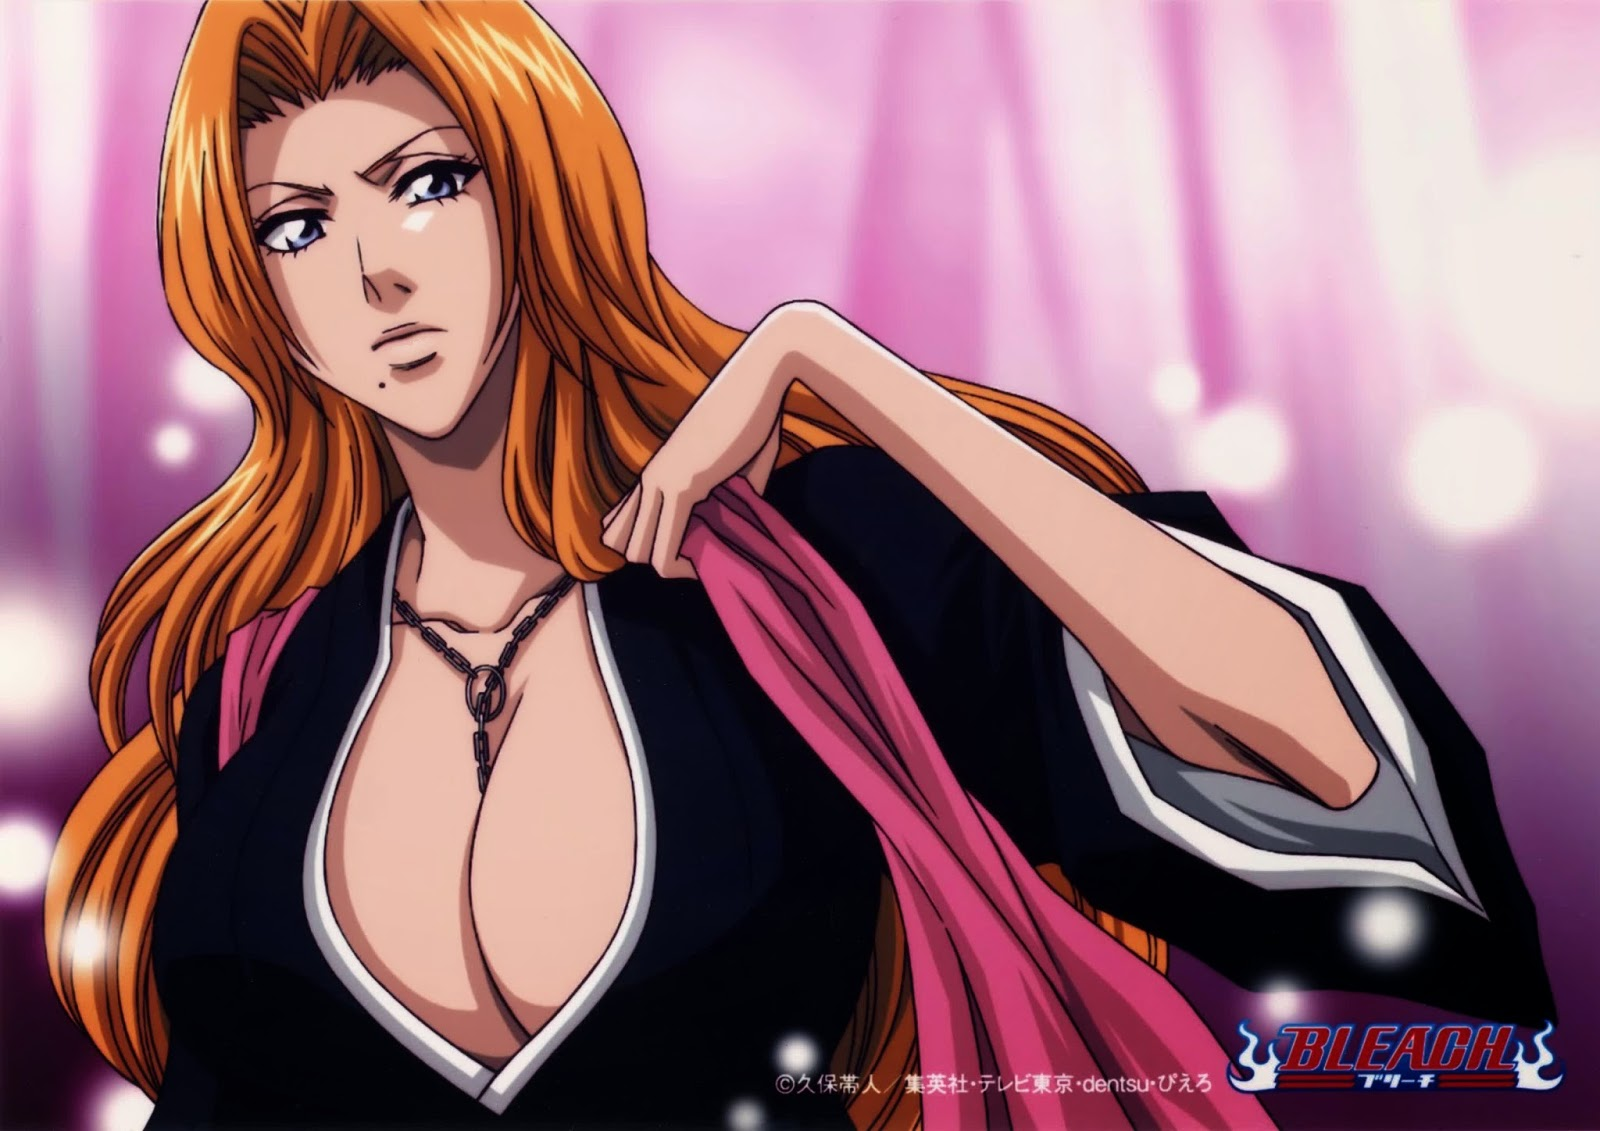 Artificial girl 3 rangiku download cartoon photo